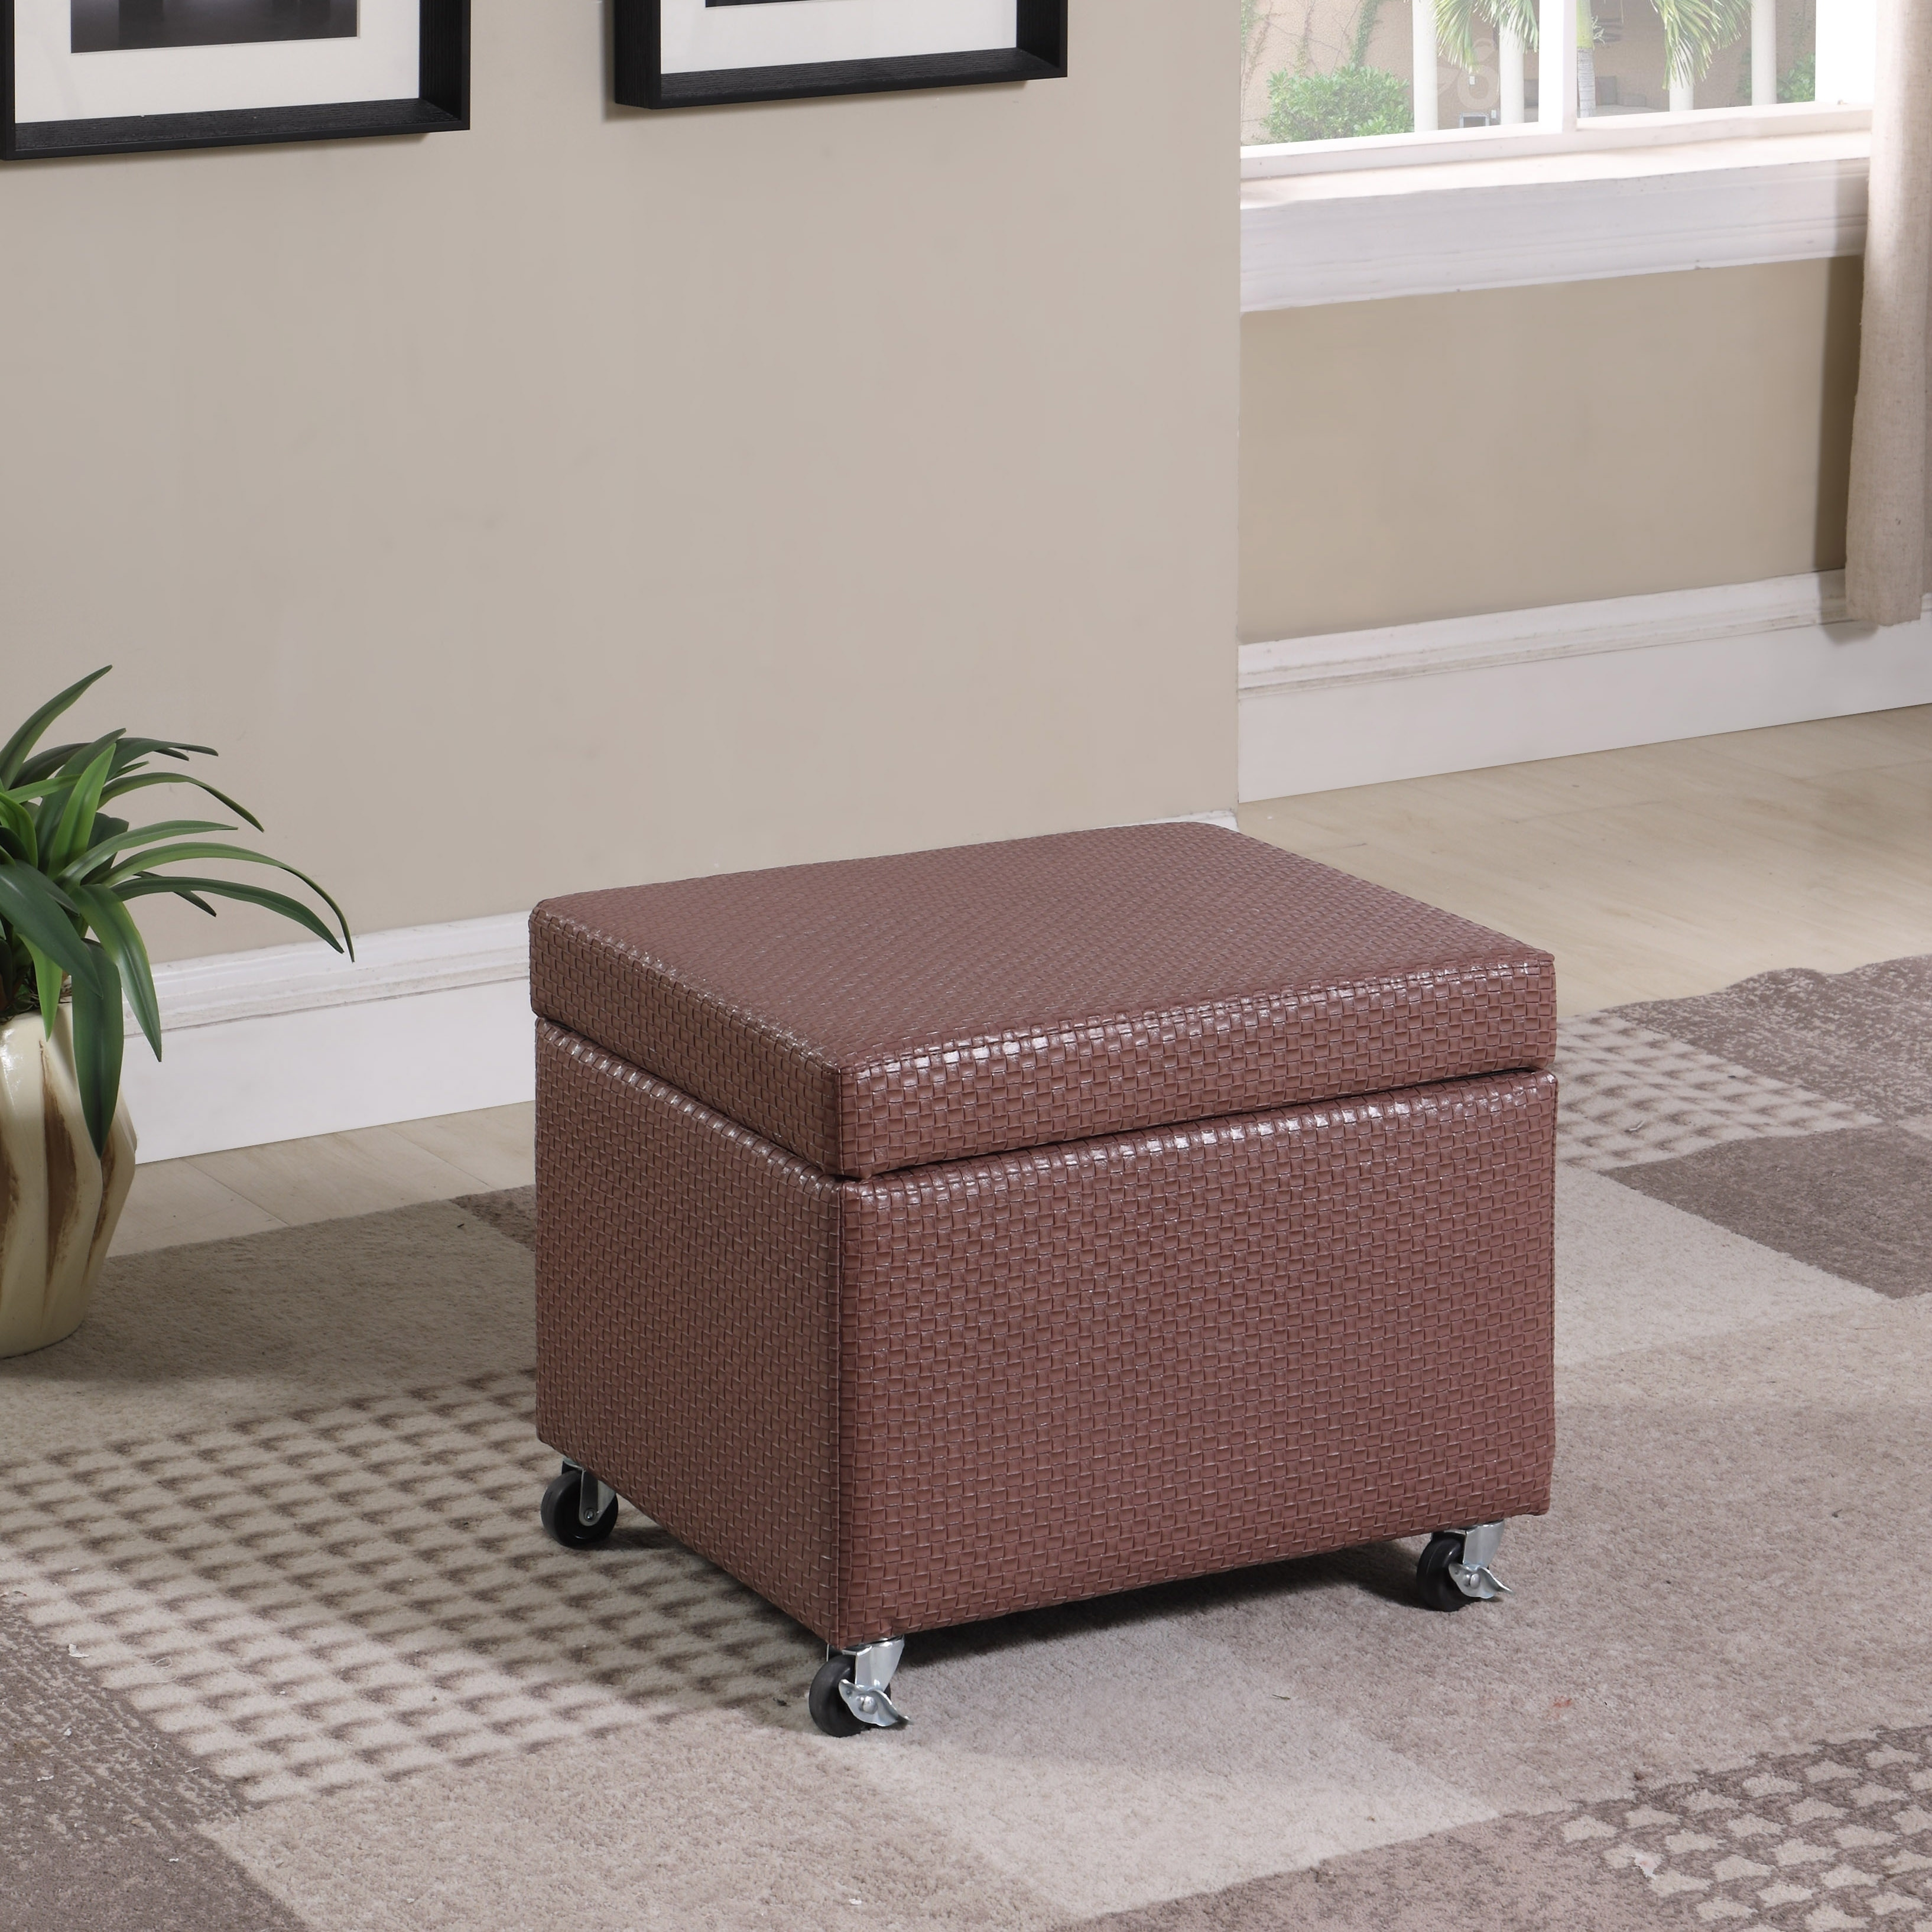 17 In Faxu Leather Storage Ottoman Seat With Wheels Brown